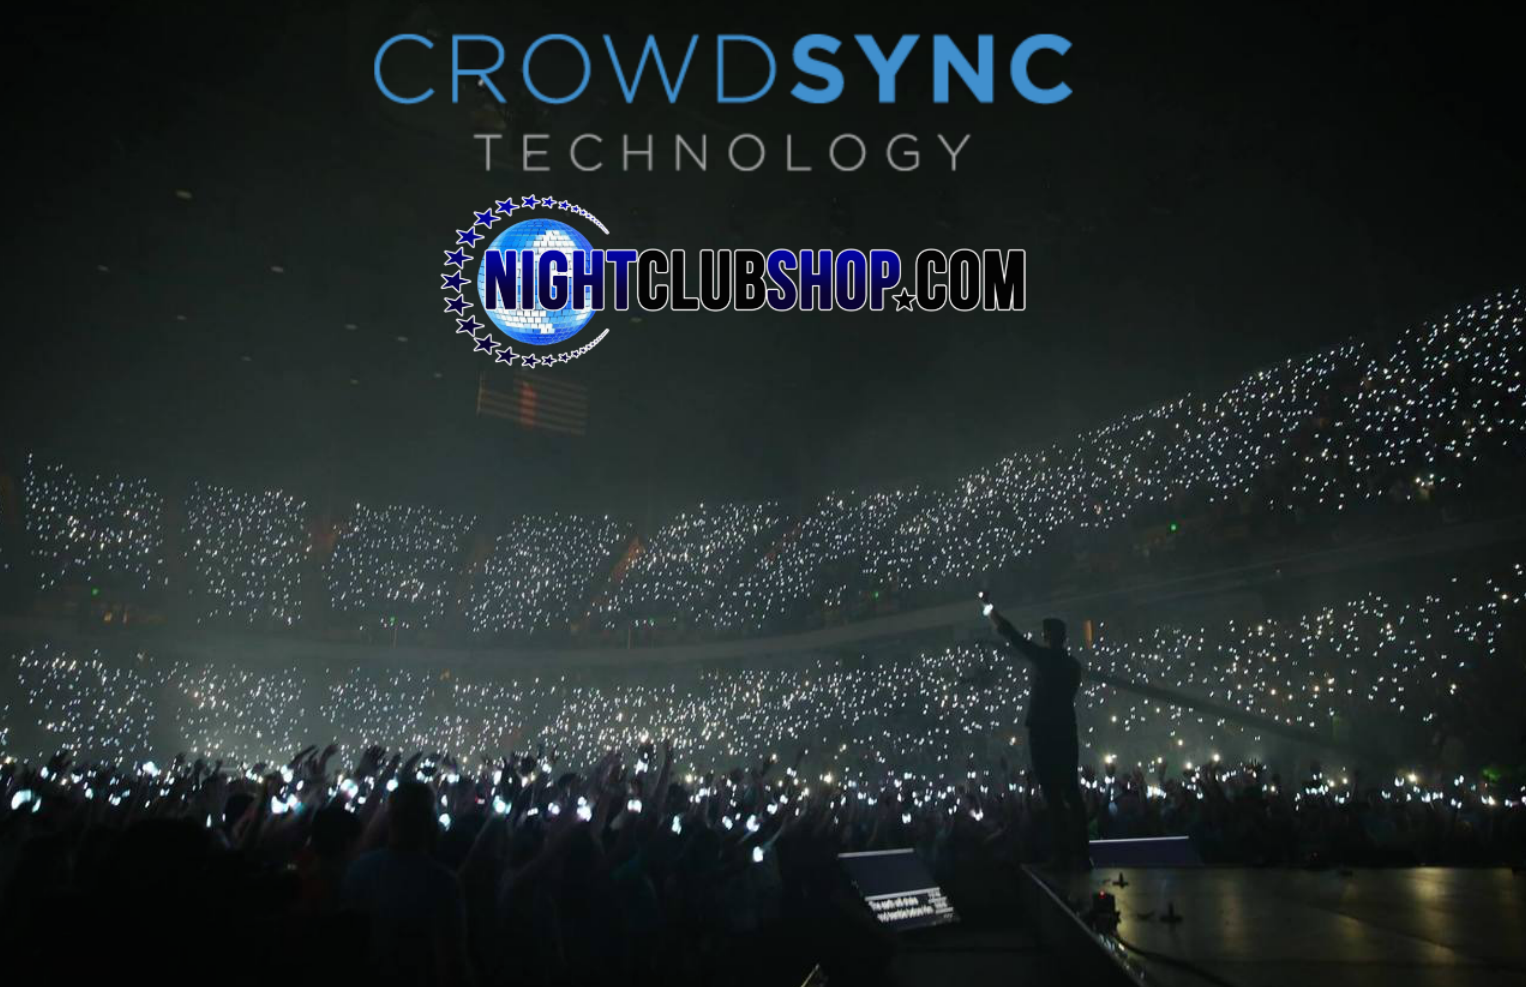 nightclubshop-rf-led-wristband-crowdsync-technology.png